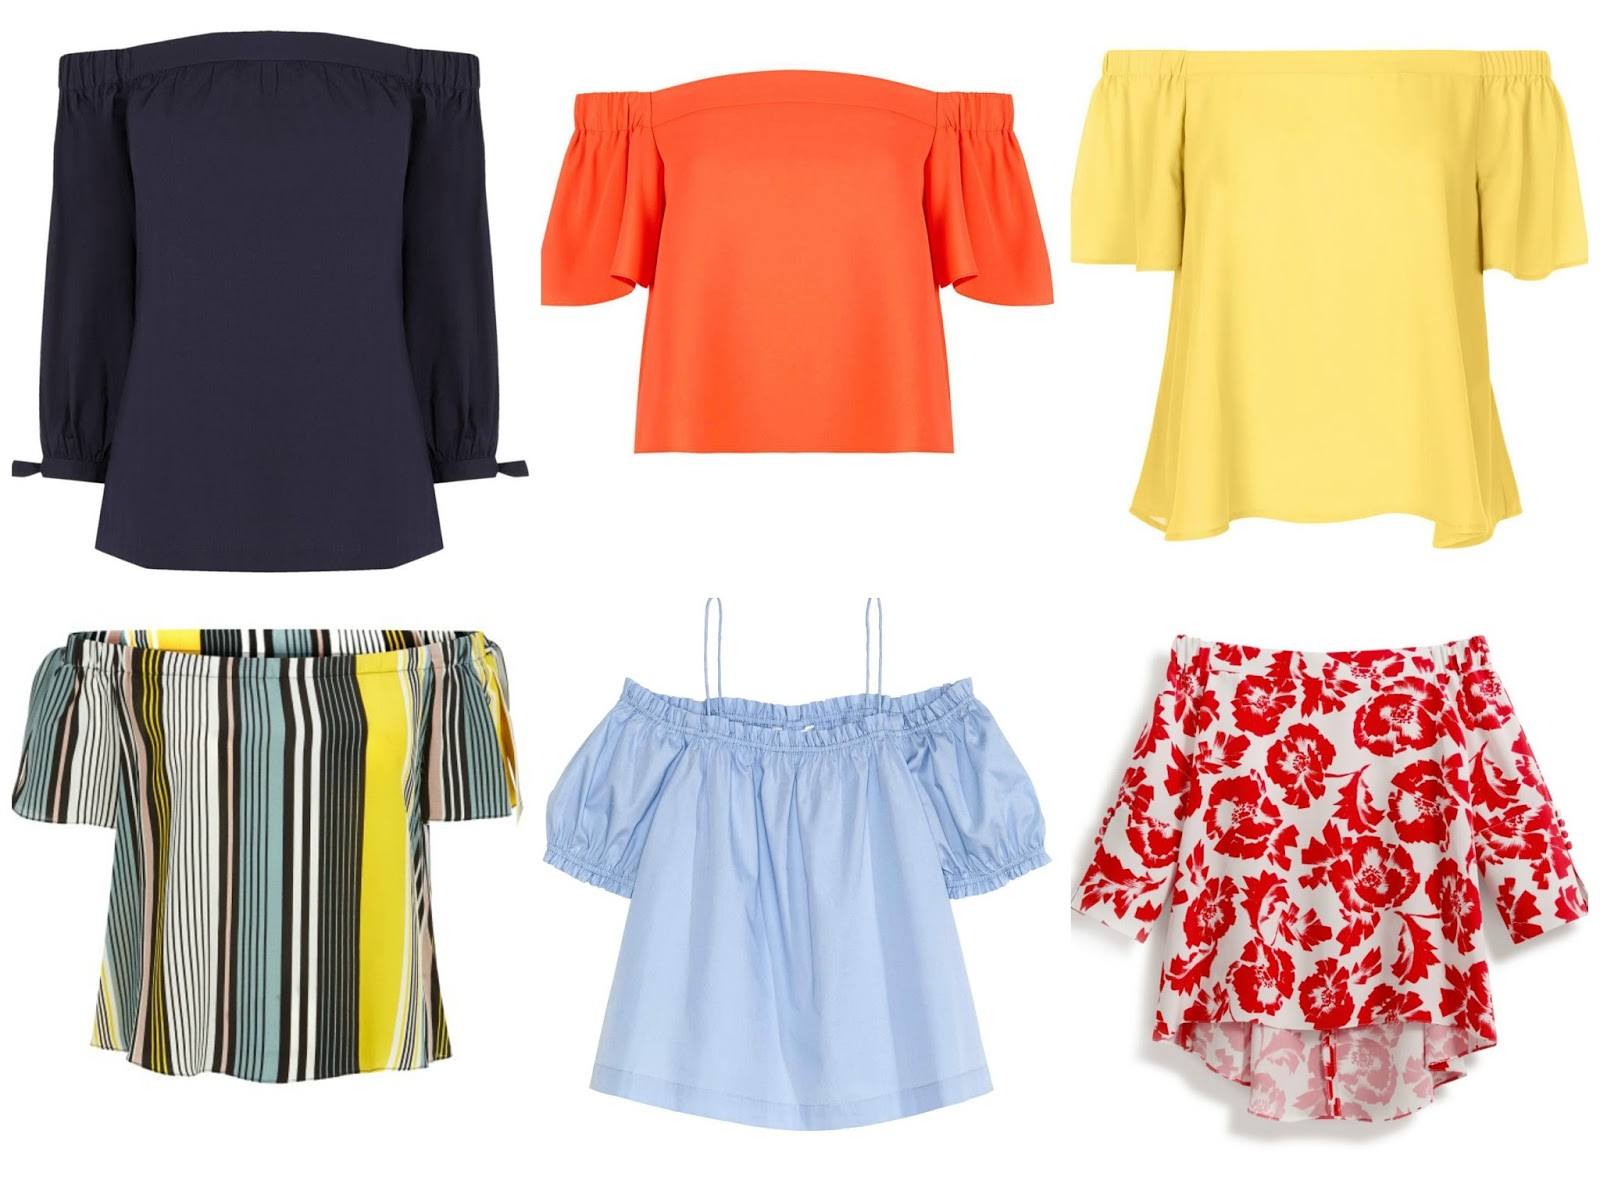 db13e978687 Cotton off-shoulder top, £32, Warehouse; Structured Bardot Top, £32,  Topshop; Bright Bardot Top, £12.99, New Look; Striped Bardot Top, £9.99 New  Look; ...